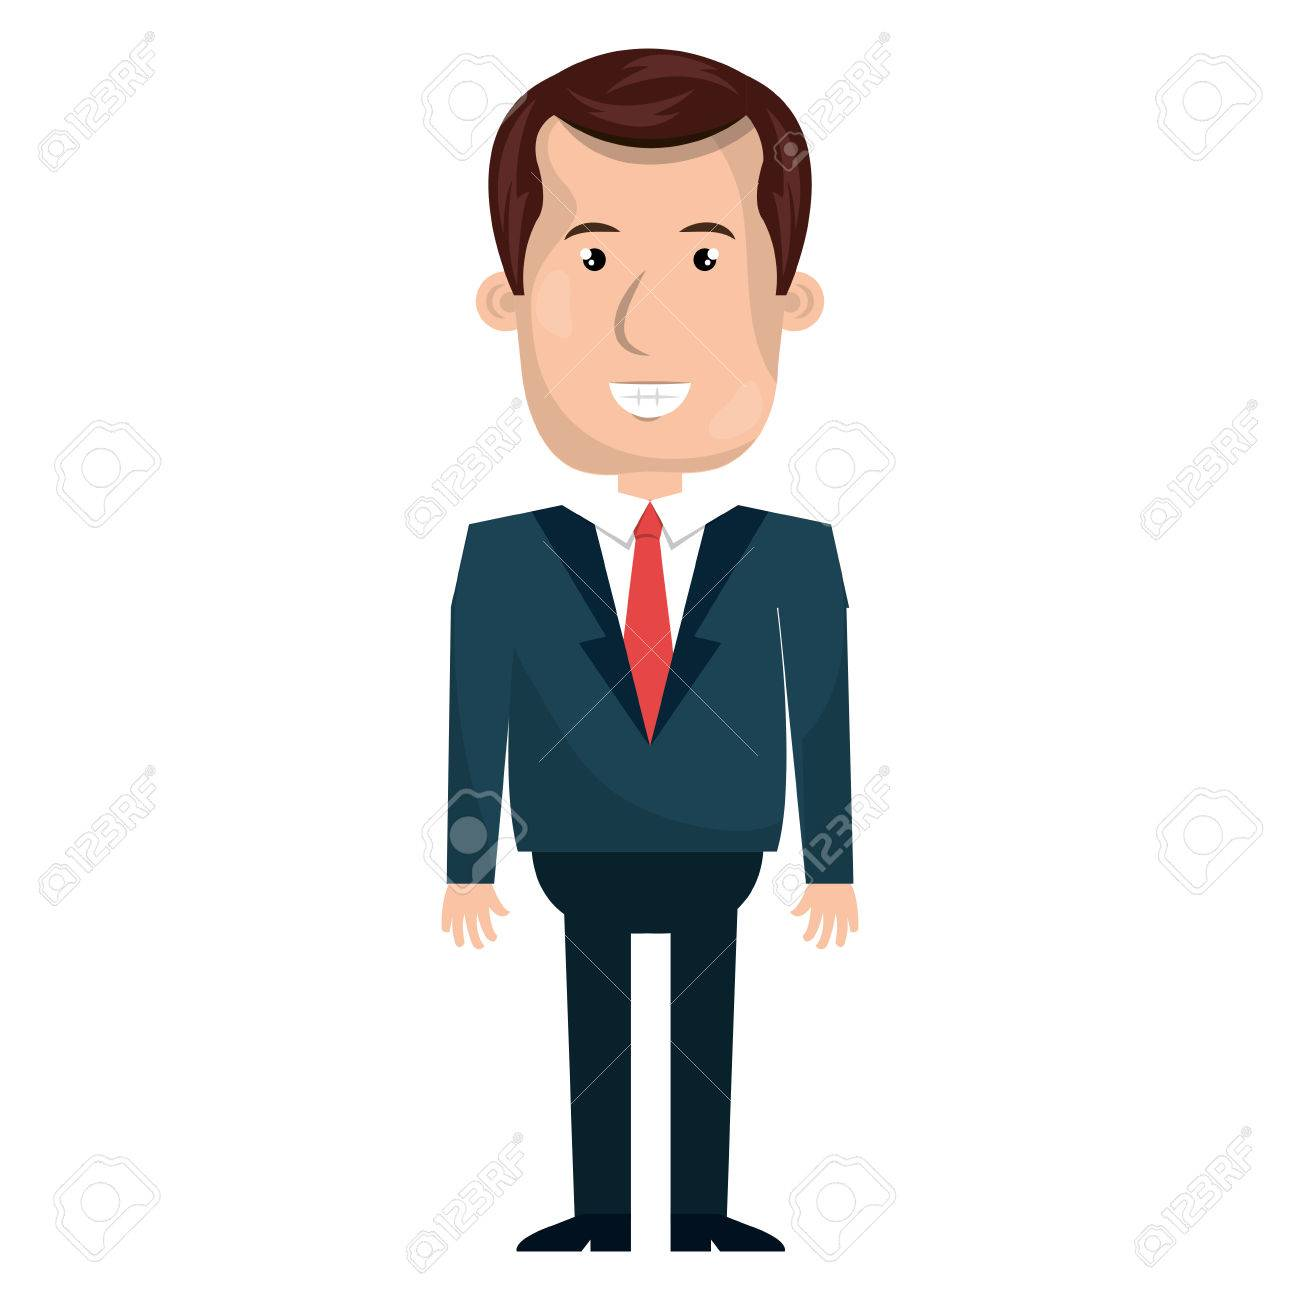 young businessman with elegant suit cartoon vector illustration